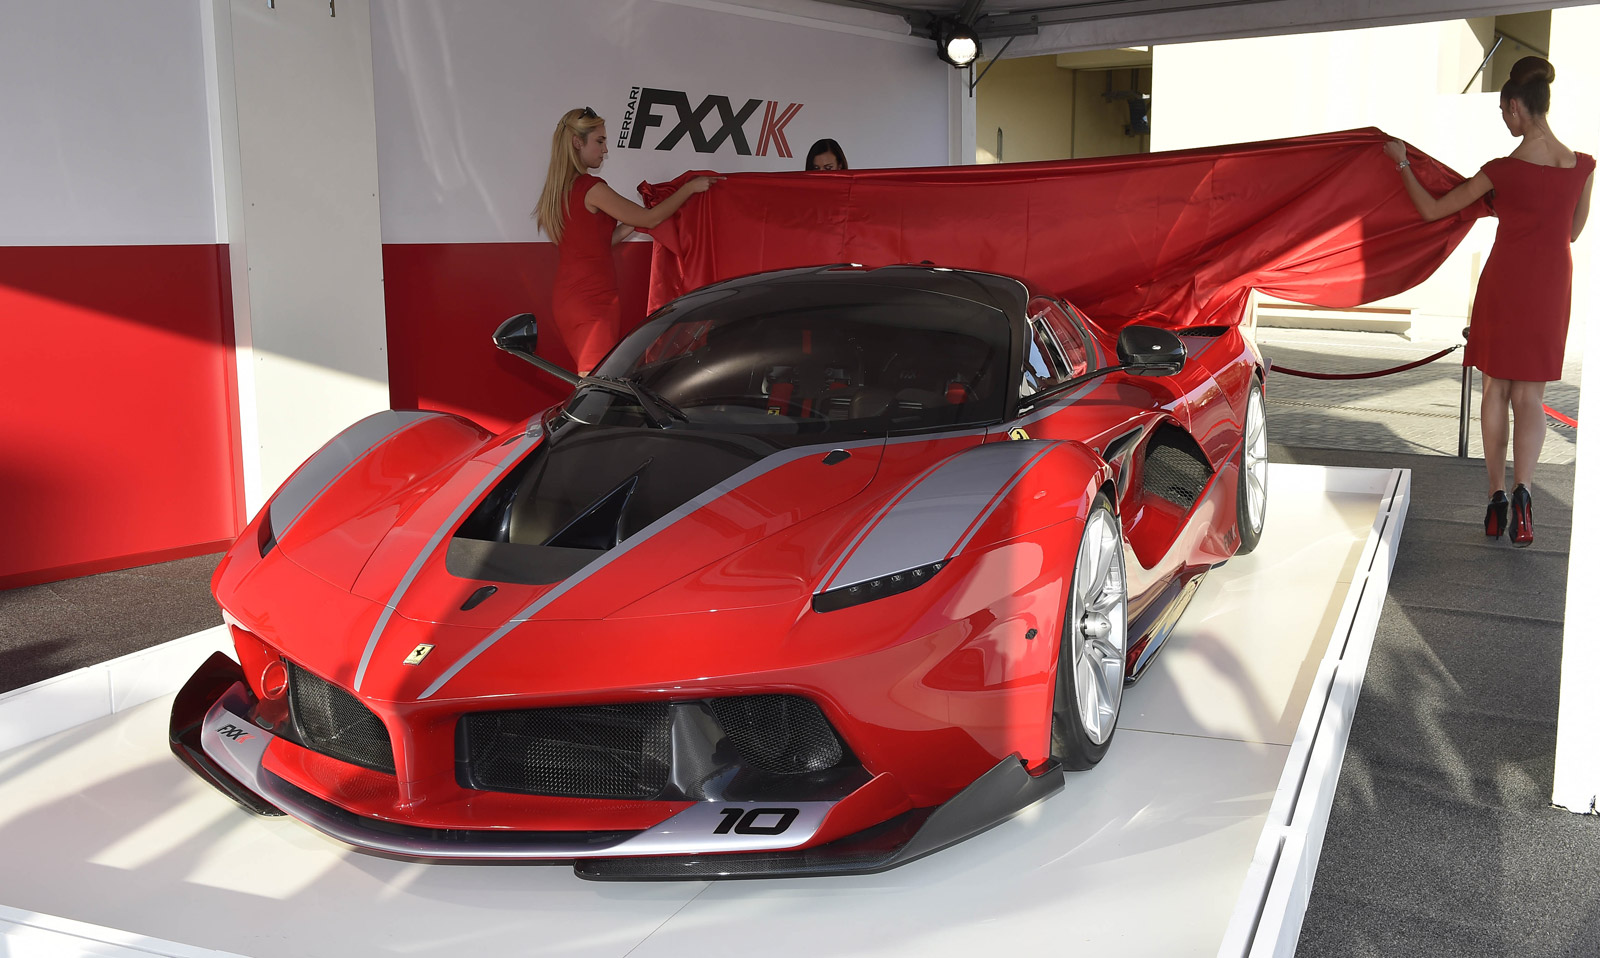 Ferrari FXX K priced from $2.7 million, already sold out